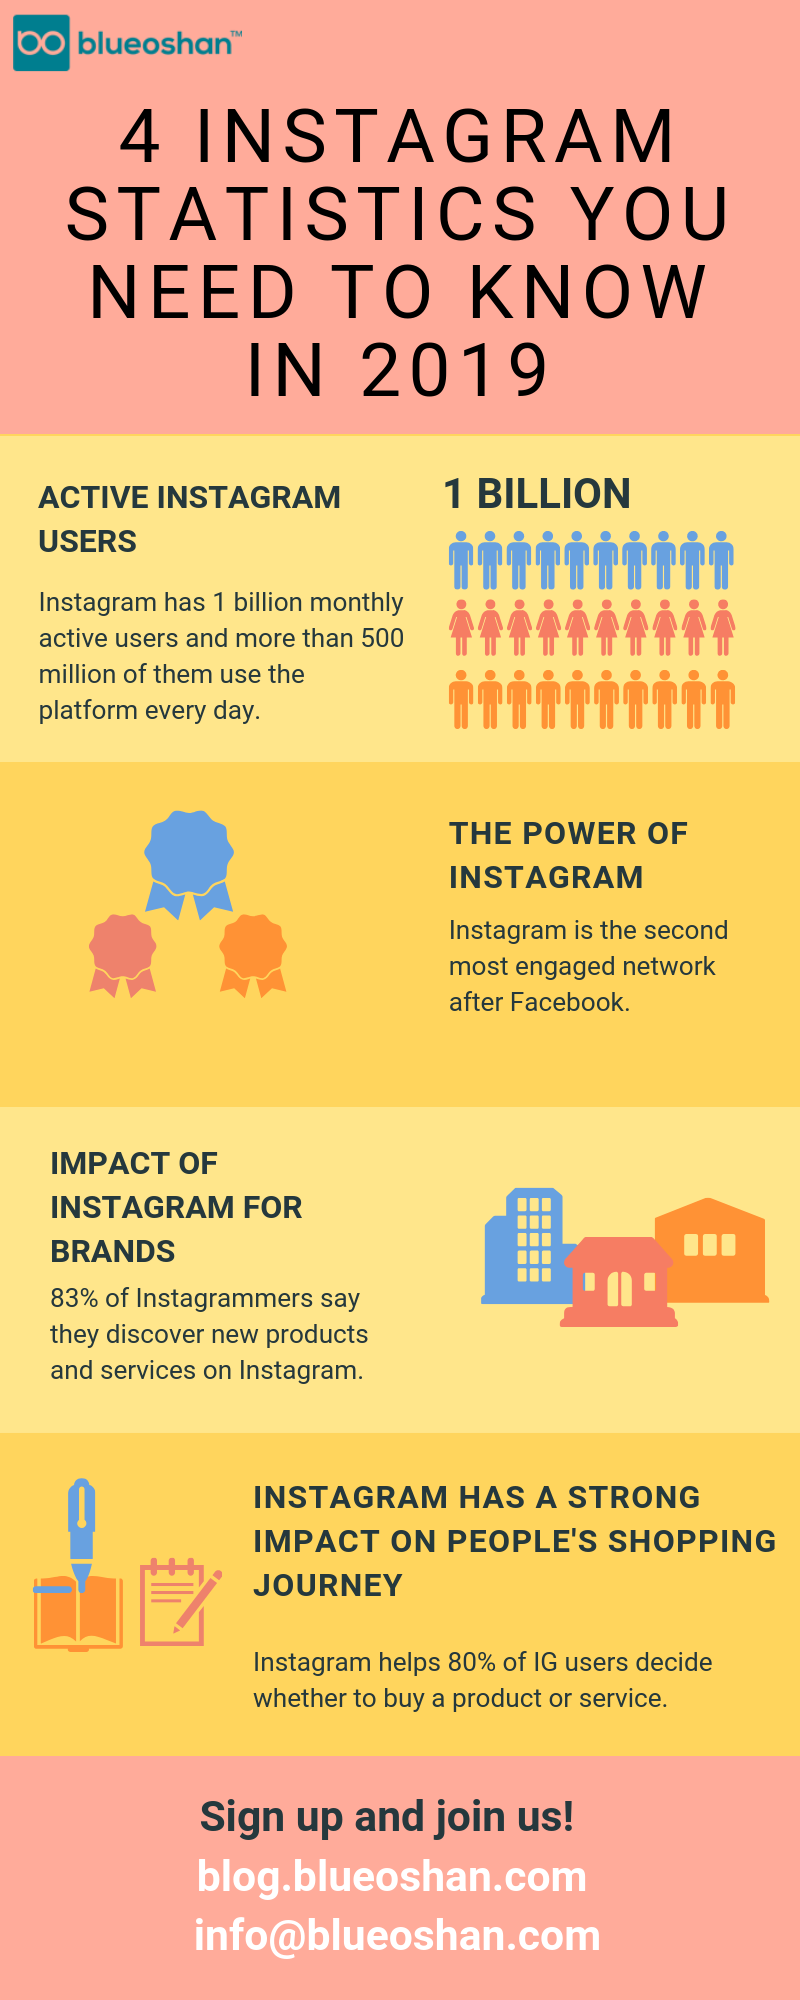 4 Instagram statistics you need to know in 2019